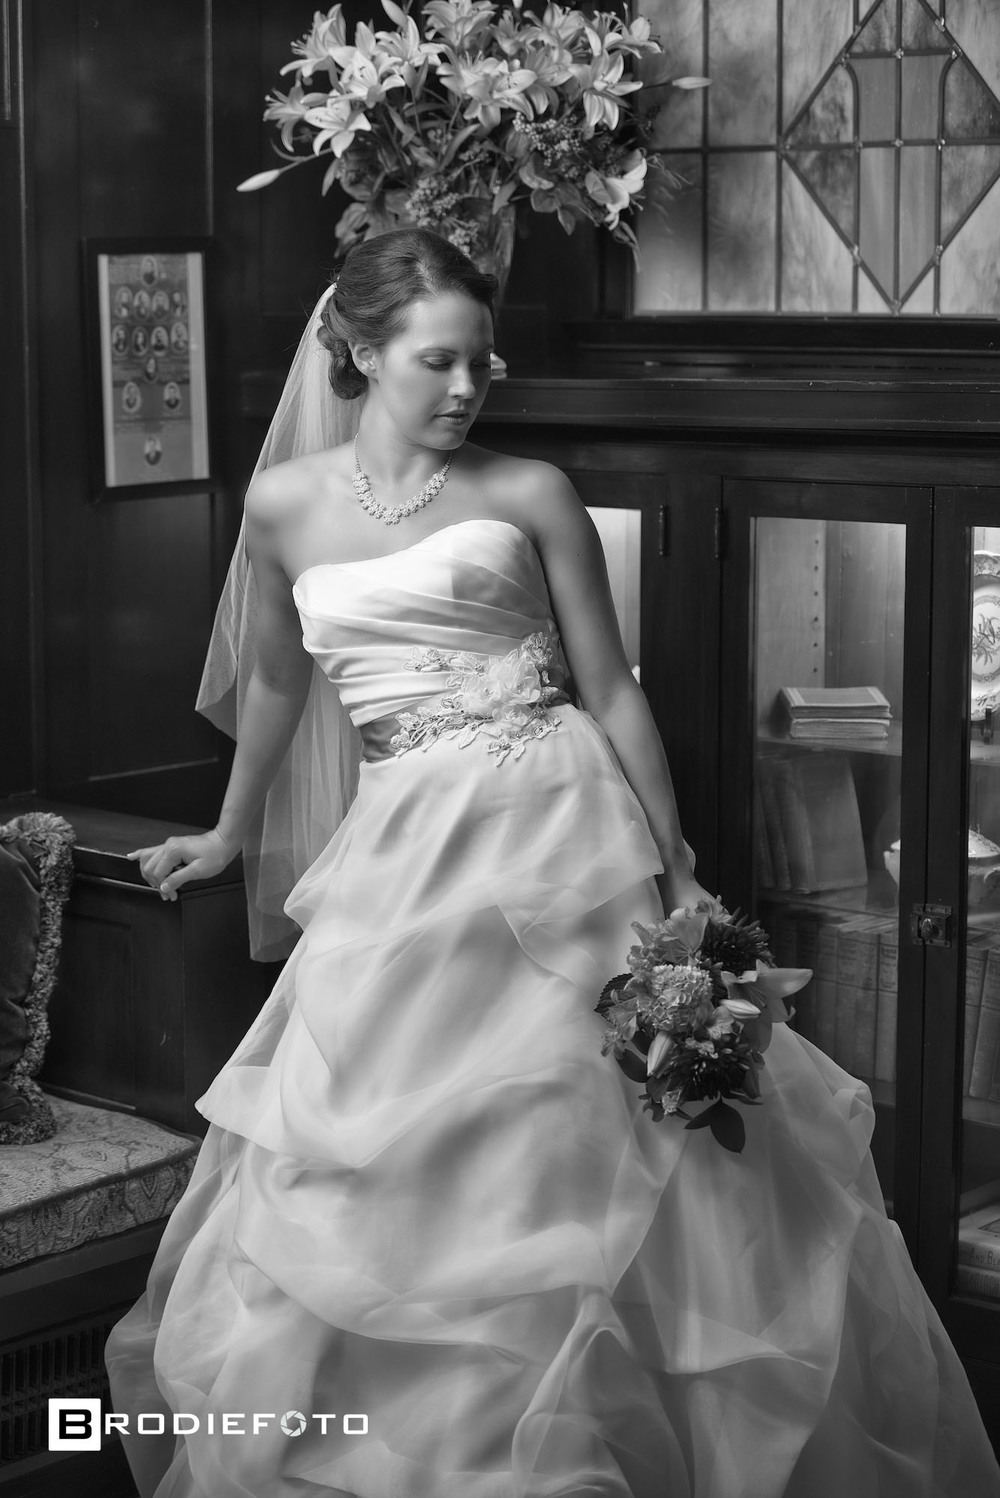 Lindsay's Bridal Portraits at the Inn at USC